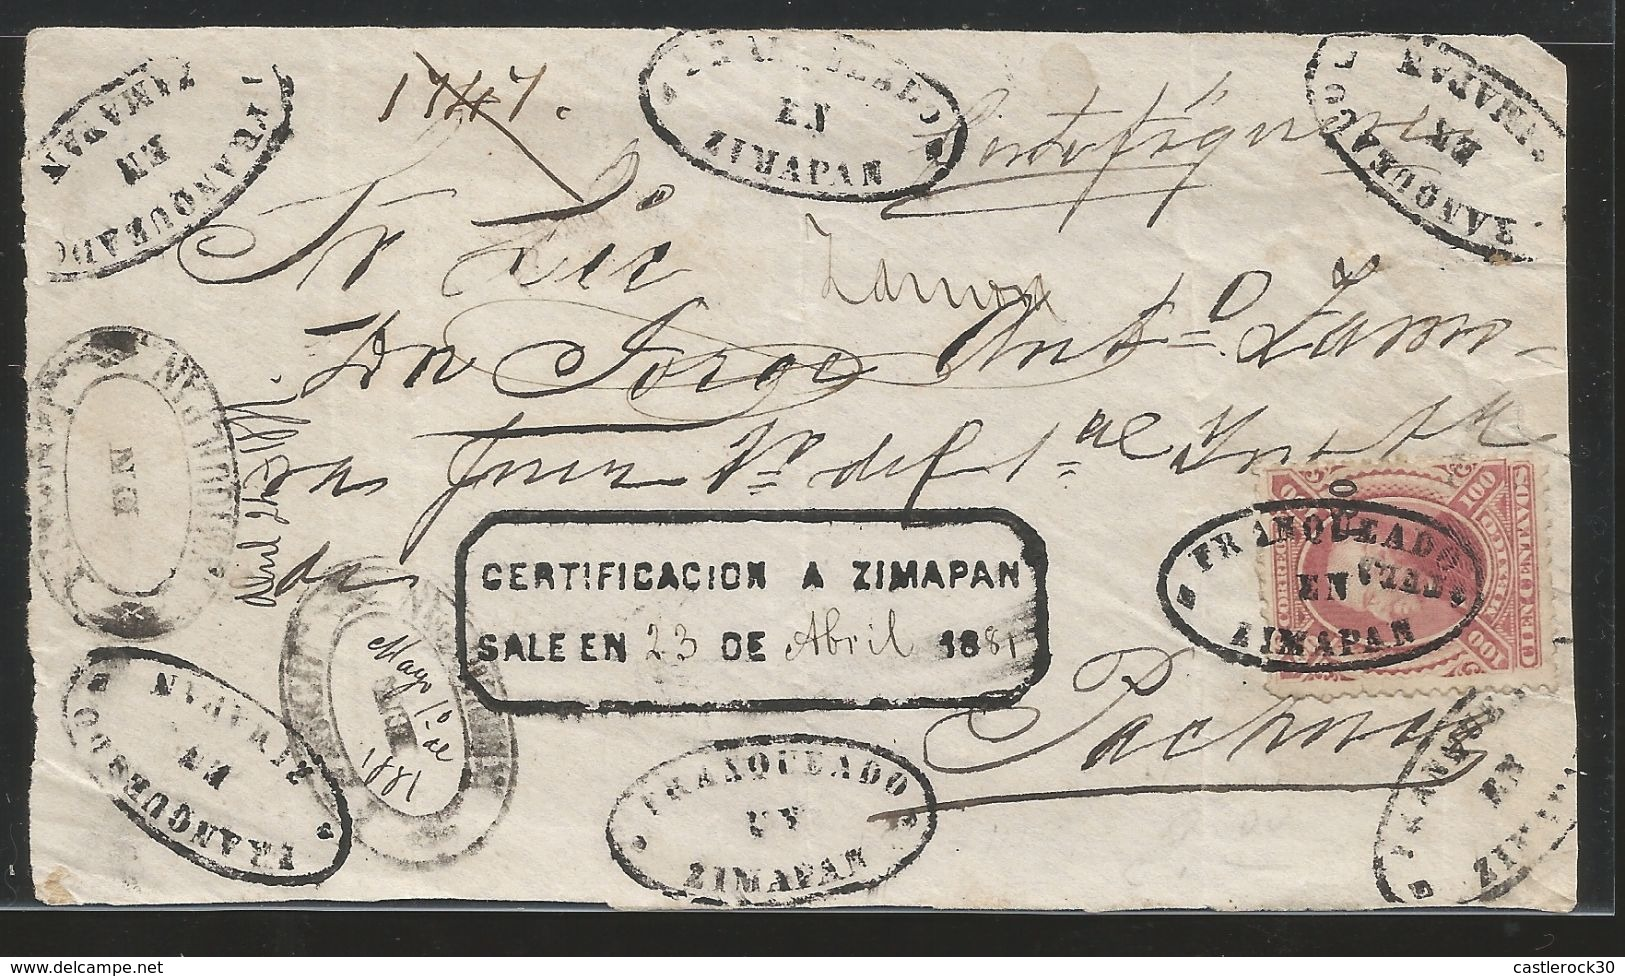 J) 1874 MEXICO, 100 CENTS CARMINE, FRONT OF LETTER, TULA, CONS 7-80 NUMERALS, CLOSE AT TOP, TIED BY BLOD ZIMPAN OVAL HAN - Mexico